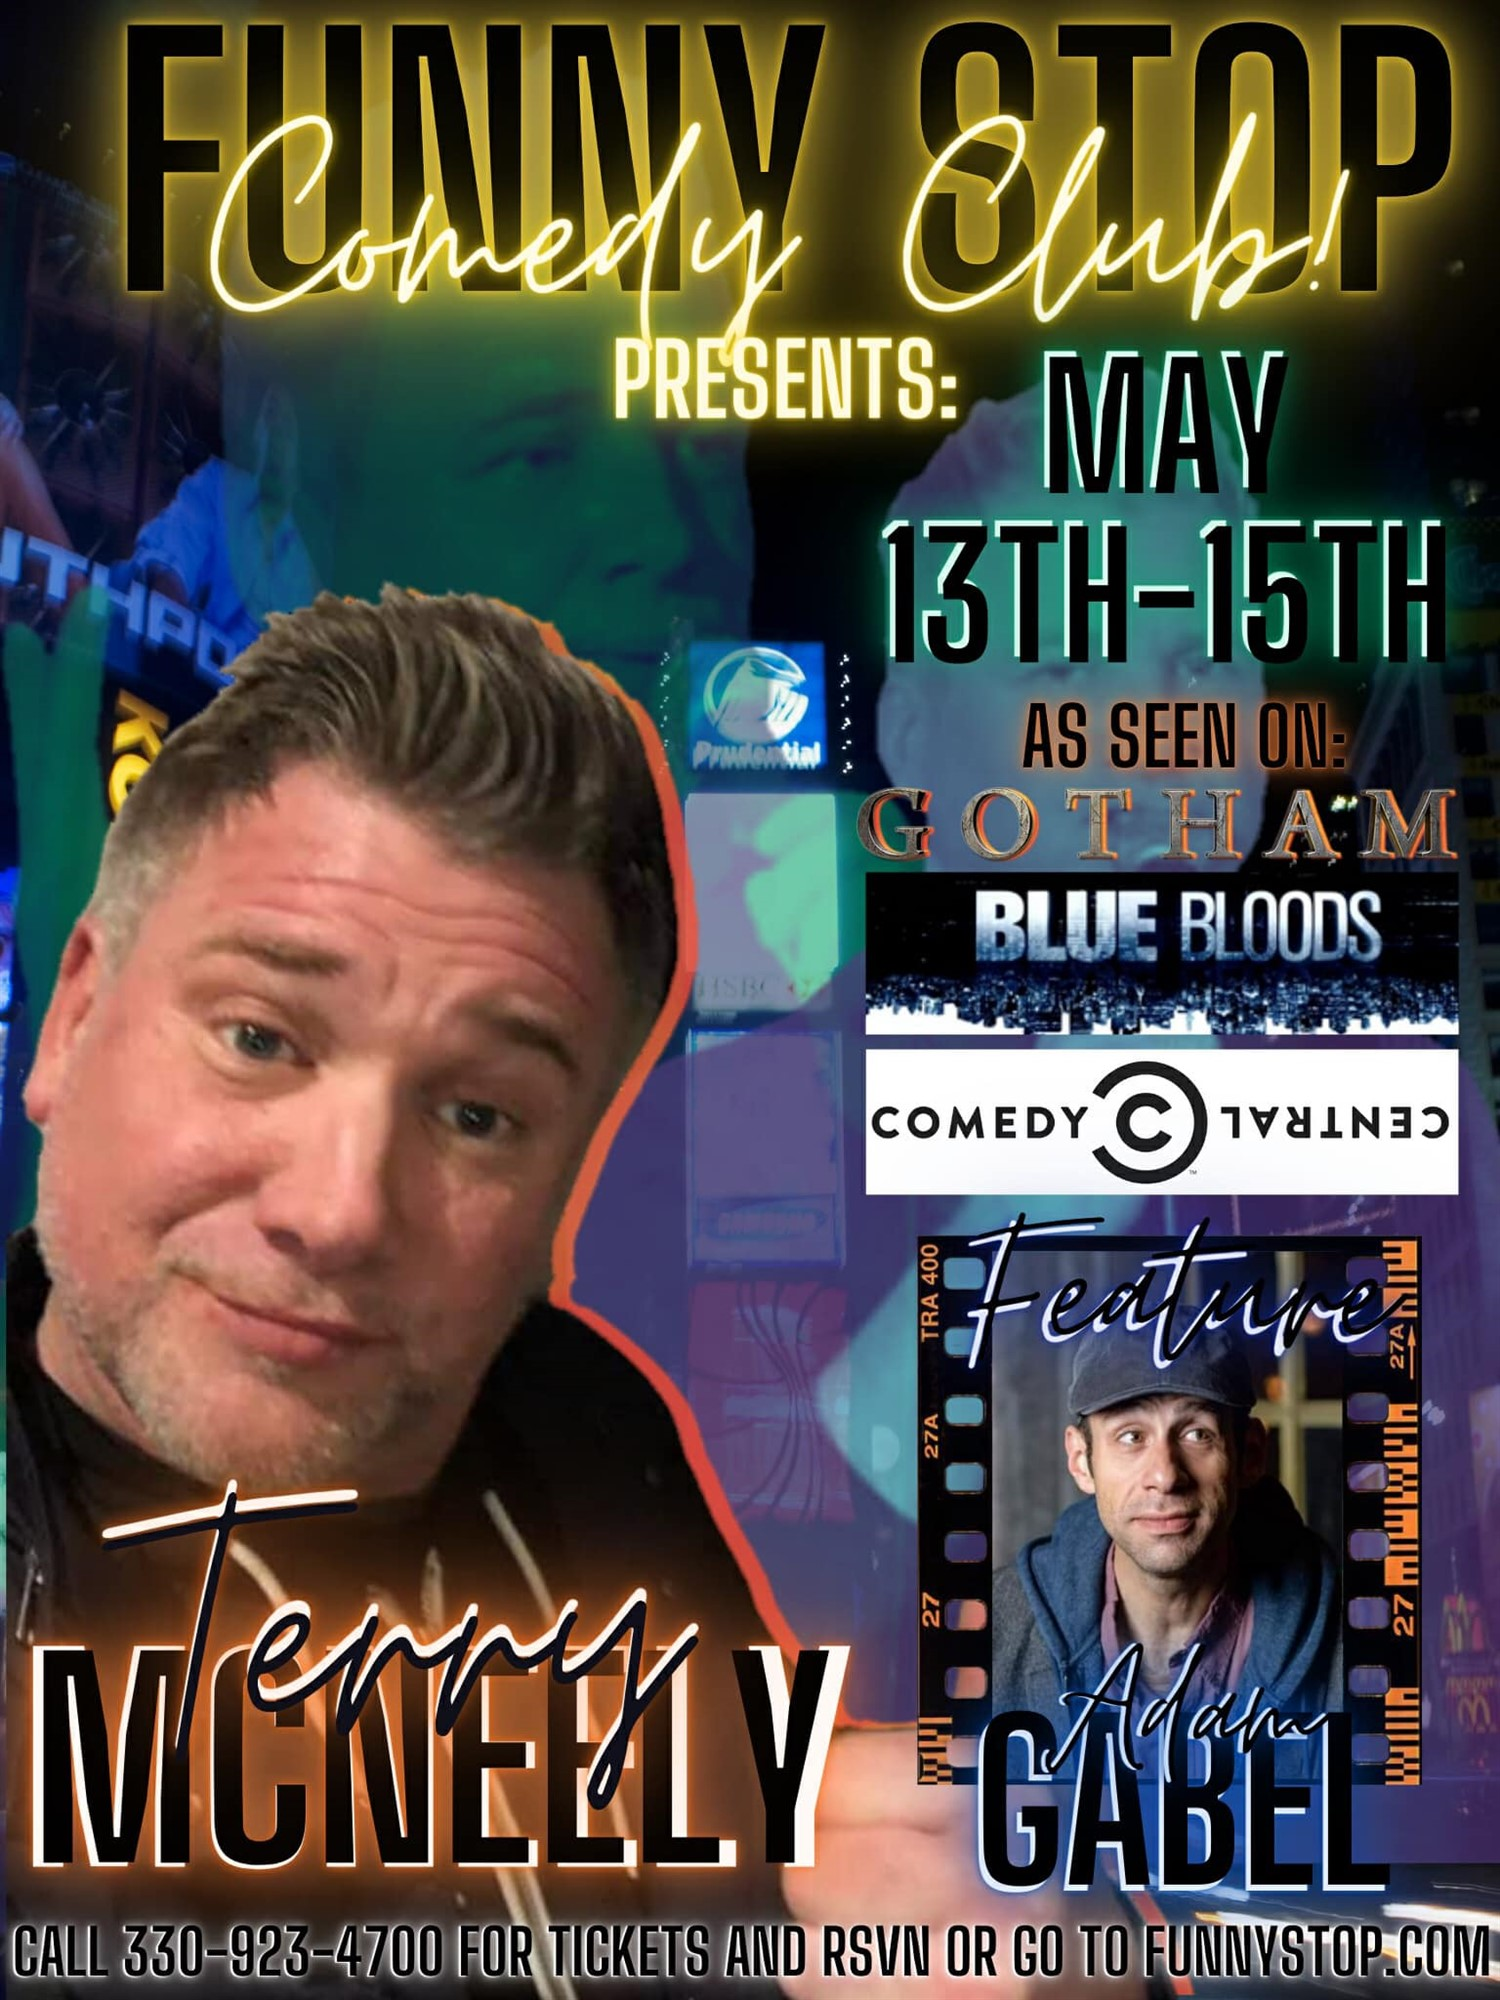 Terry McNeely Friday 7:20 Show Funny Stop Comedy Club on may. 14, 19:20@Funny Stop Comedy Club - Buy tickets and Get information on Funny Stop funnystop.online